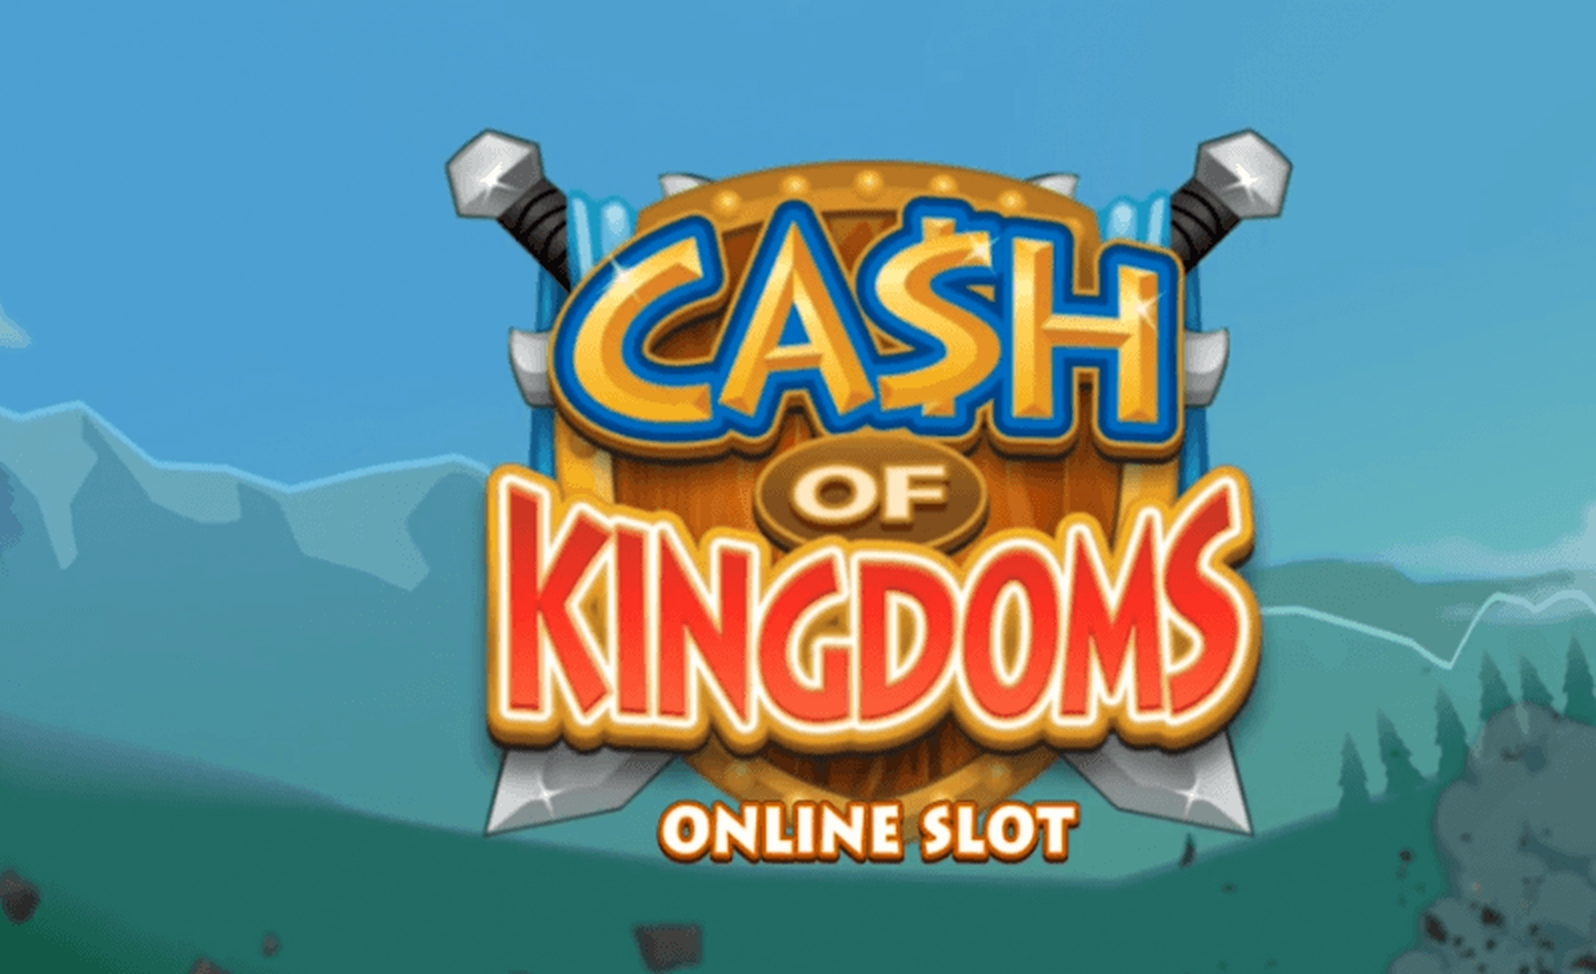 The Cash of Kingdoms Online Slot Demo Game by Slingshot Studios